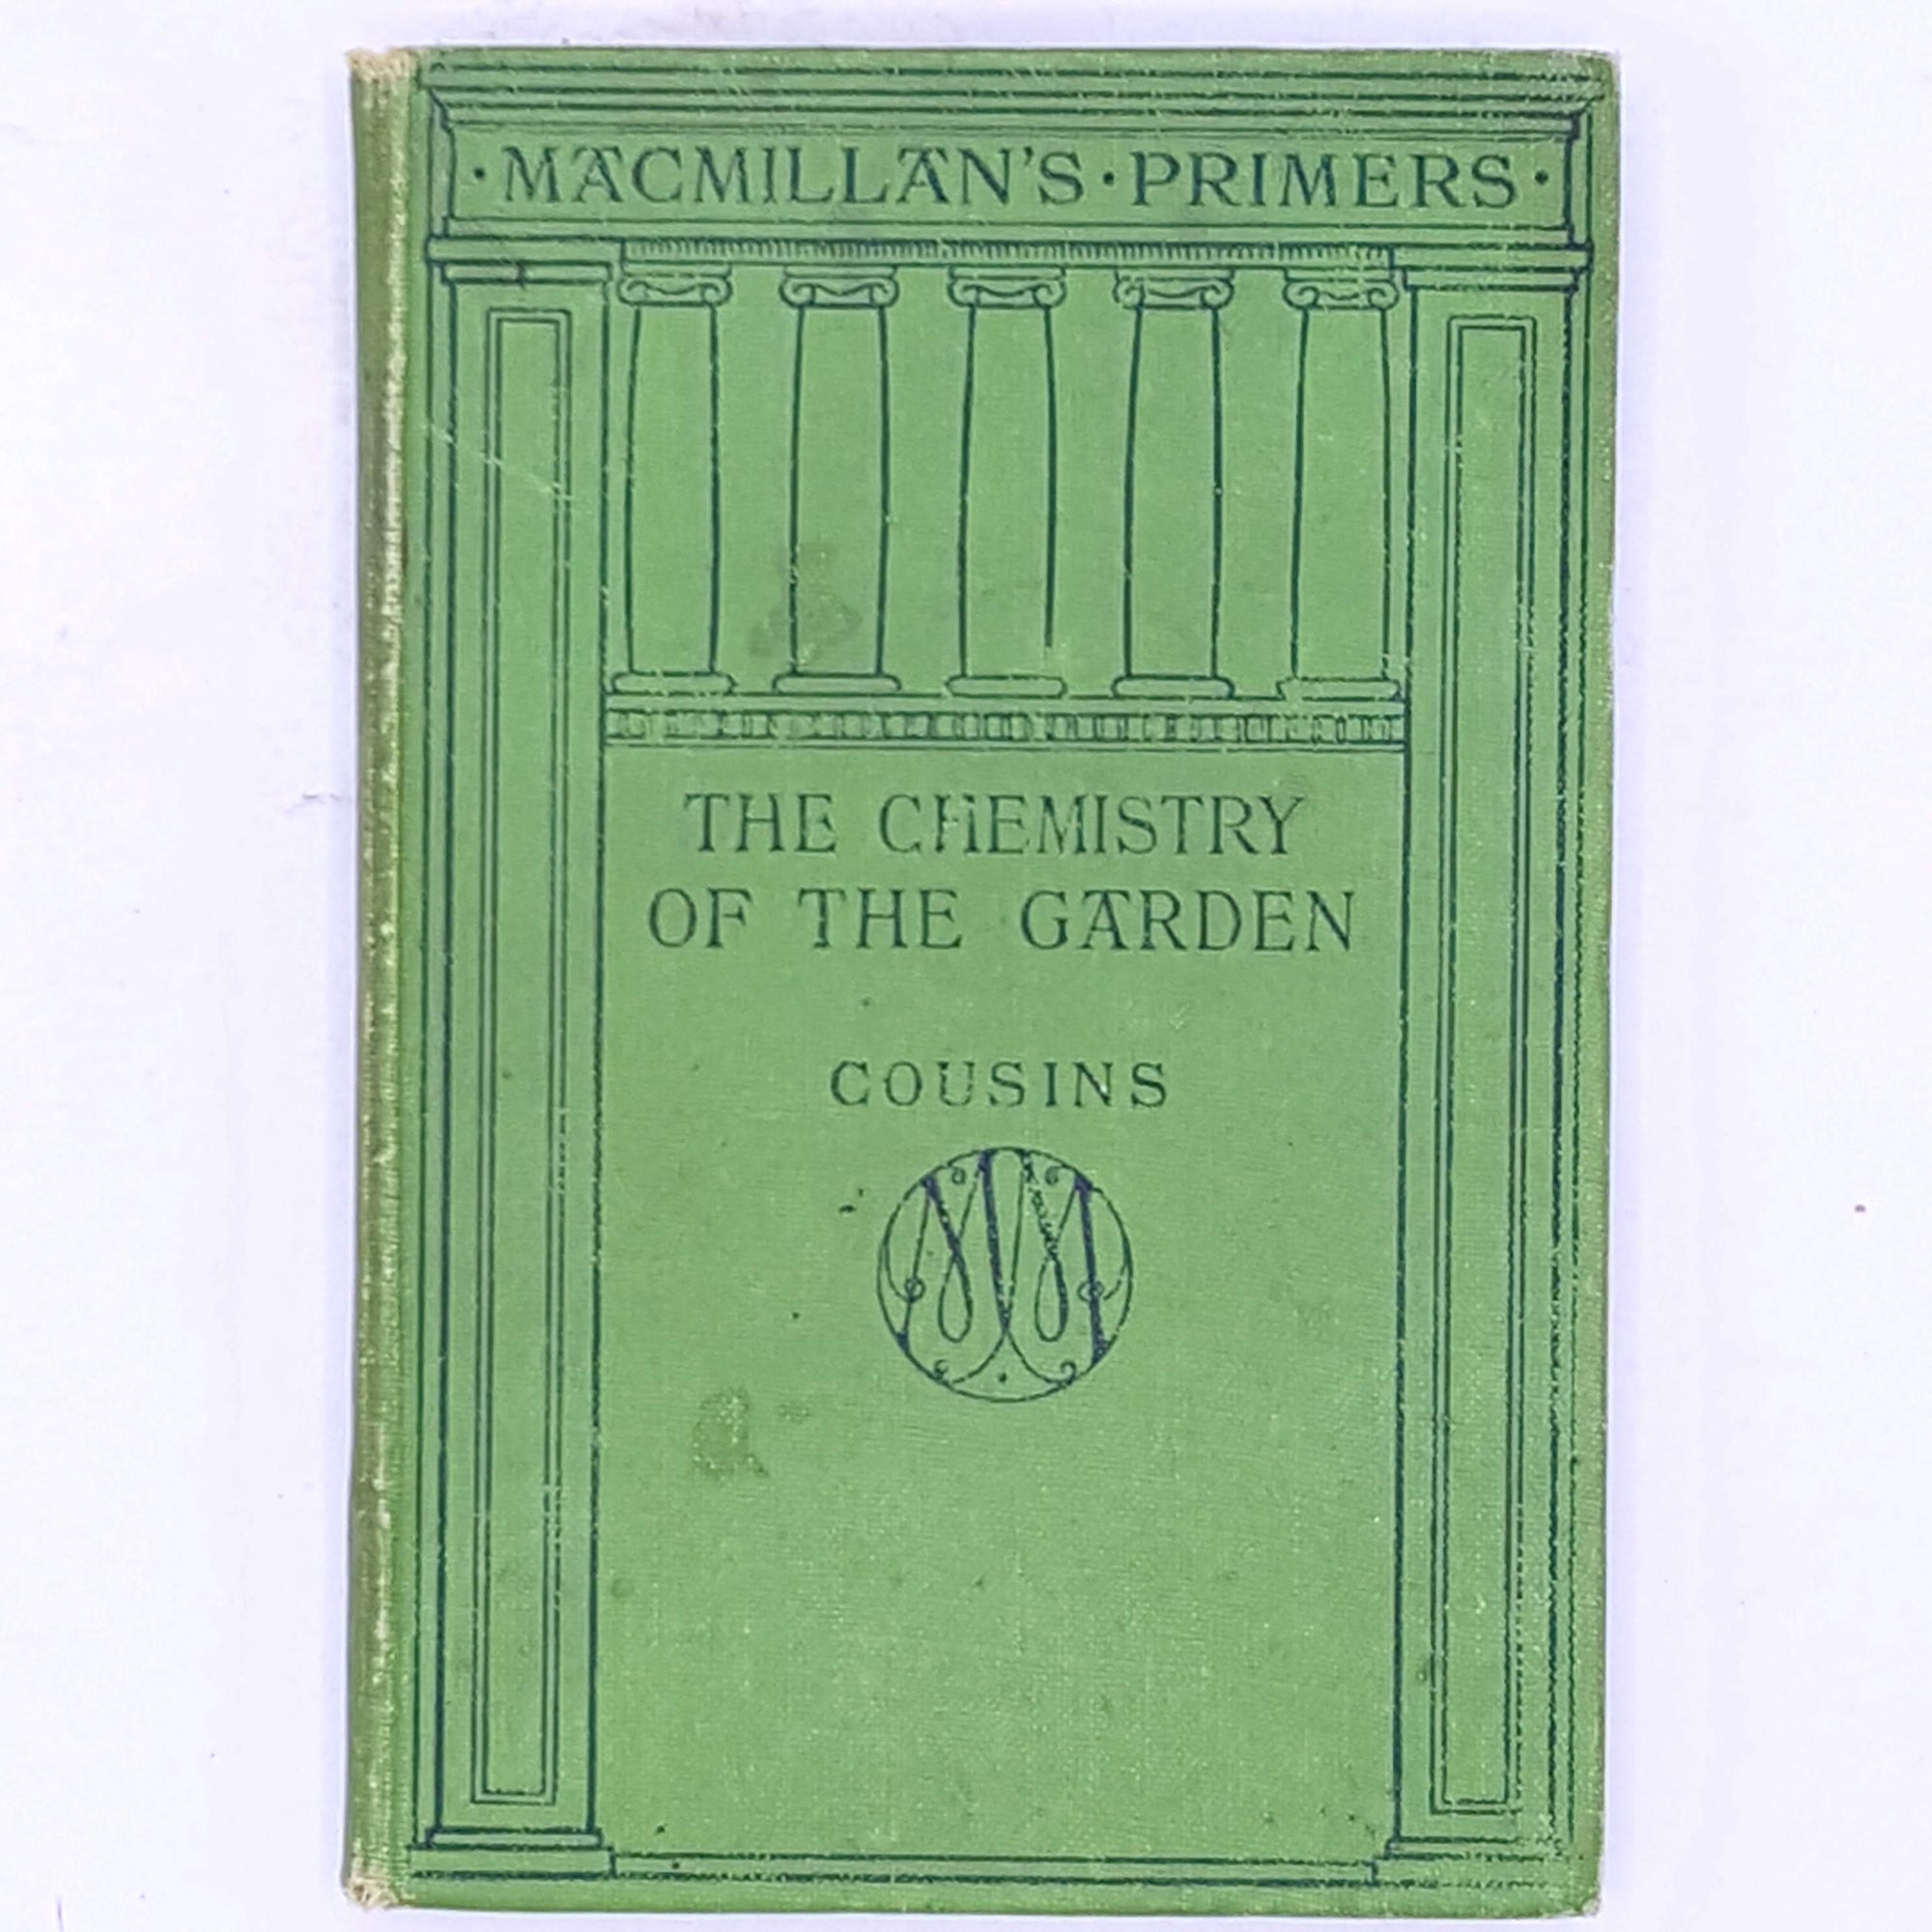 The Chemistry Of The Garden,  Herbert H. Cousins M.A., 1908